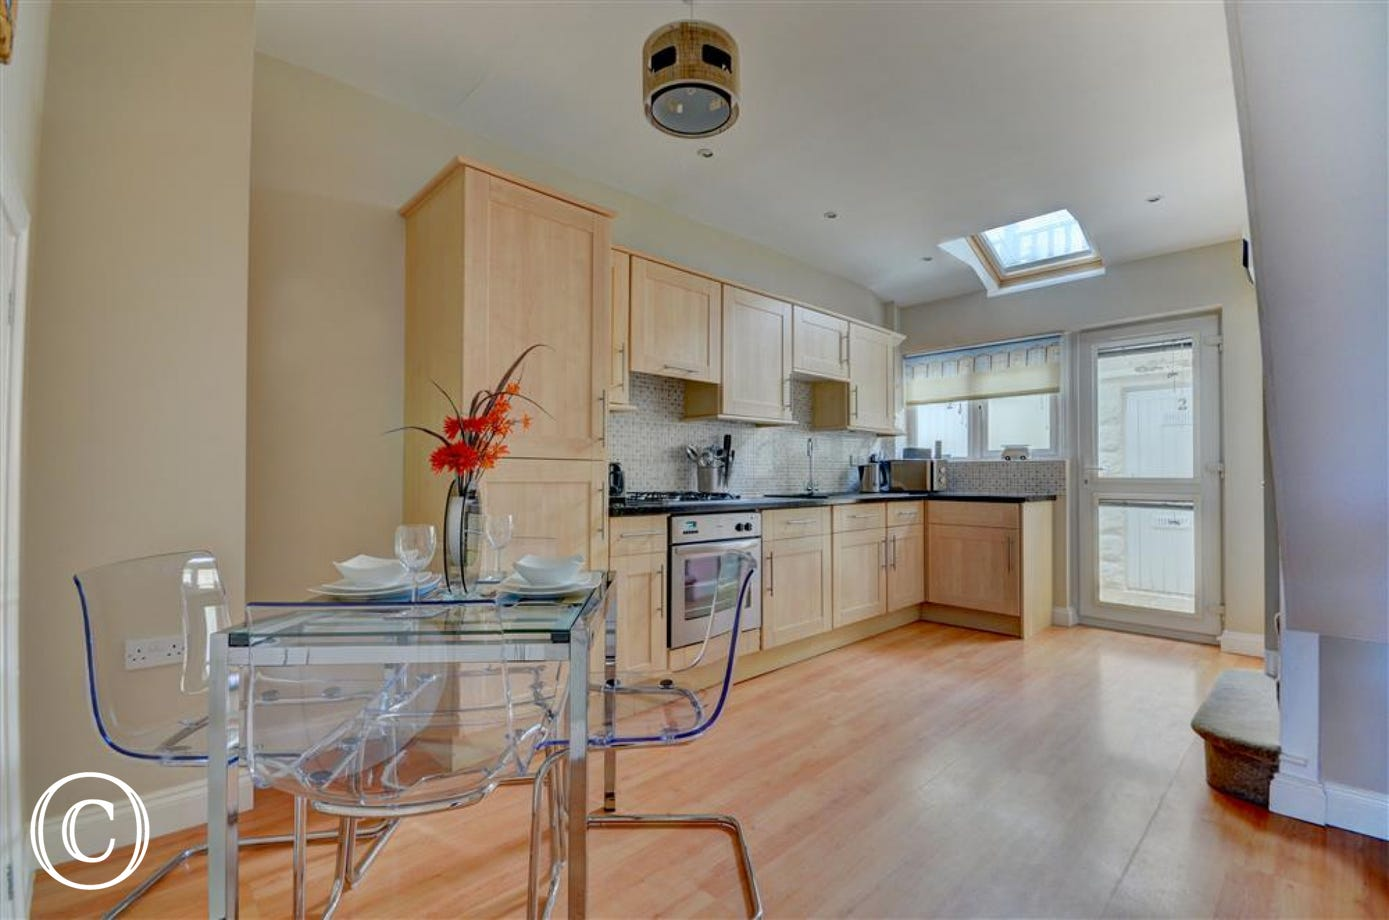 Plenty of space in the open plan kitchen and dining room